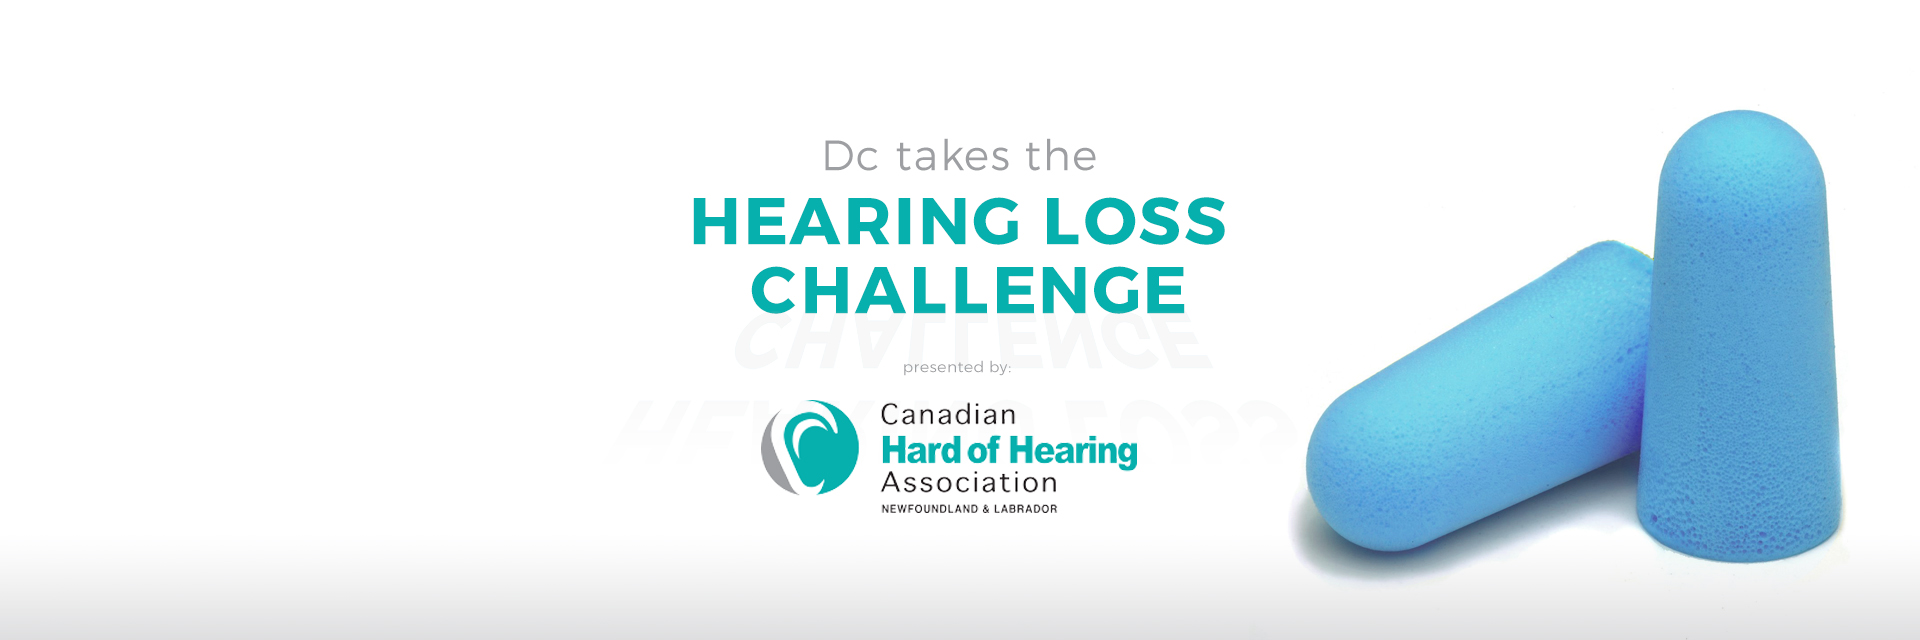 DC Takes The Hearing Loss Challenge